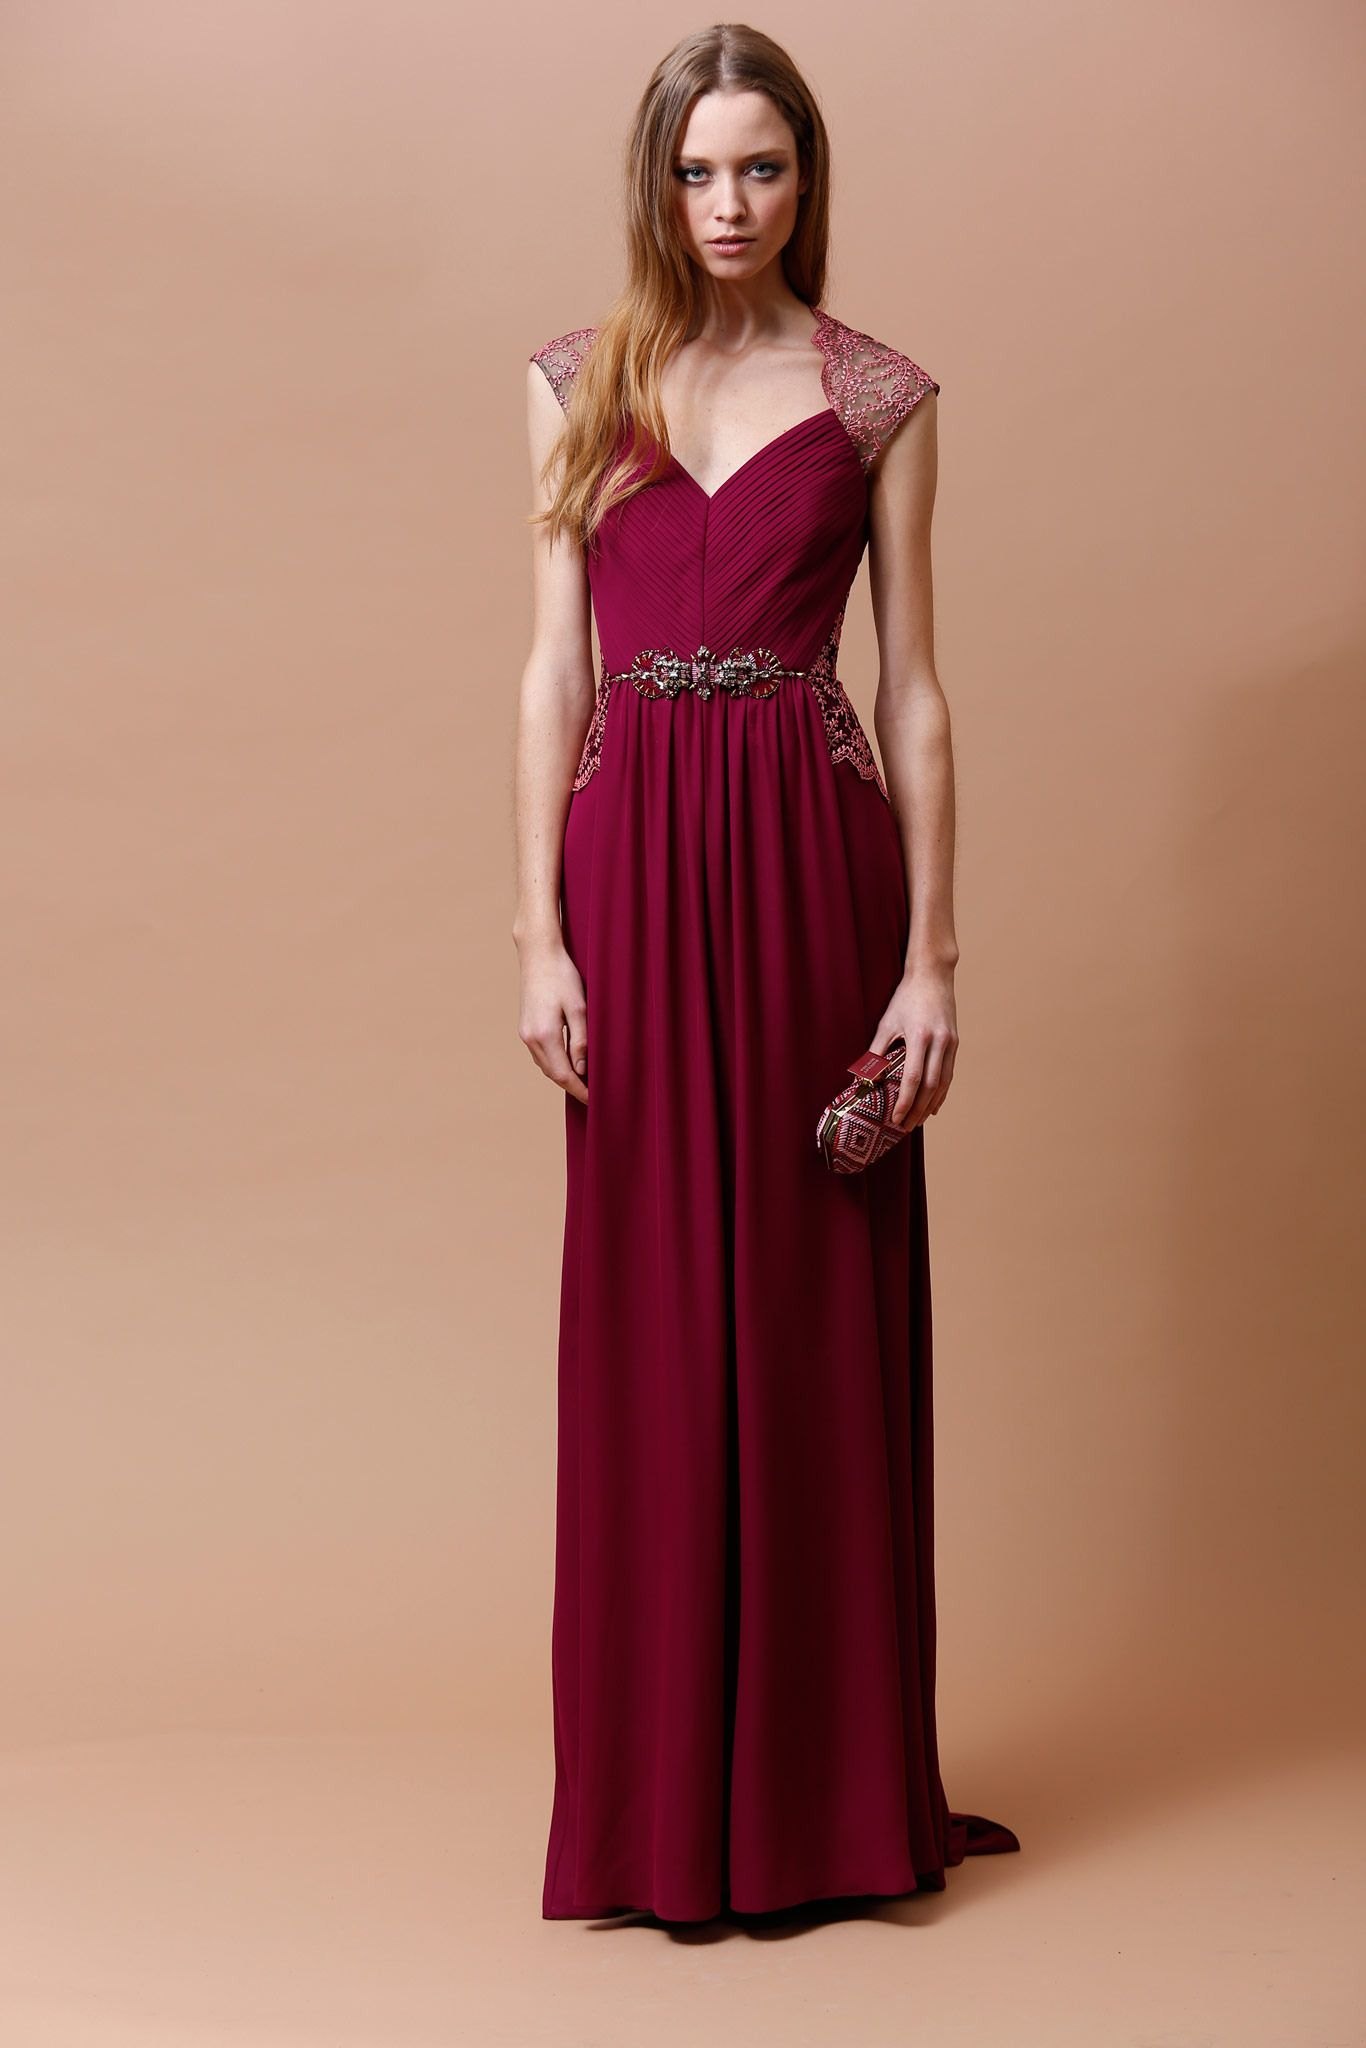 Badgley Mischka - Pre-Fall 2014 - Look 12 of 25